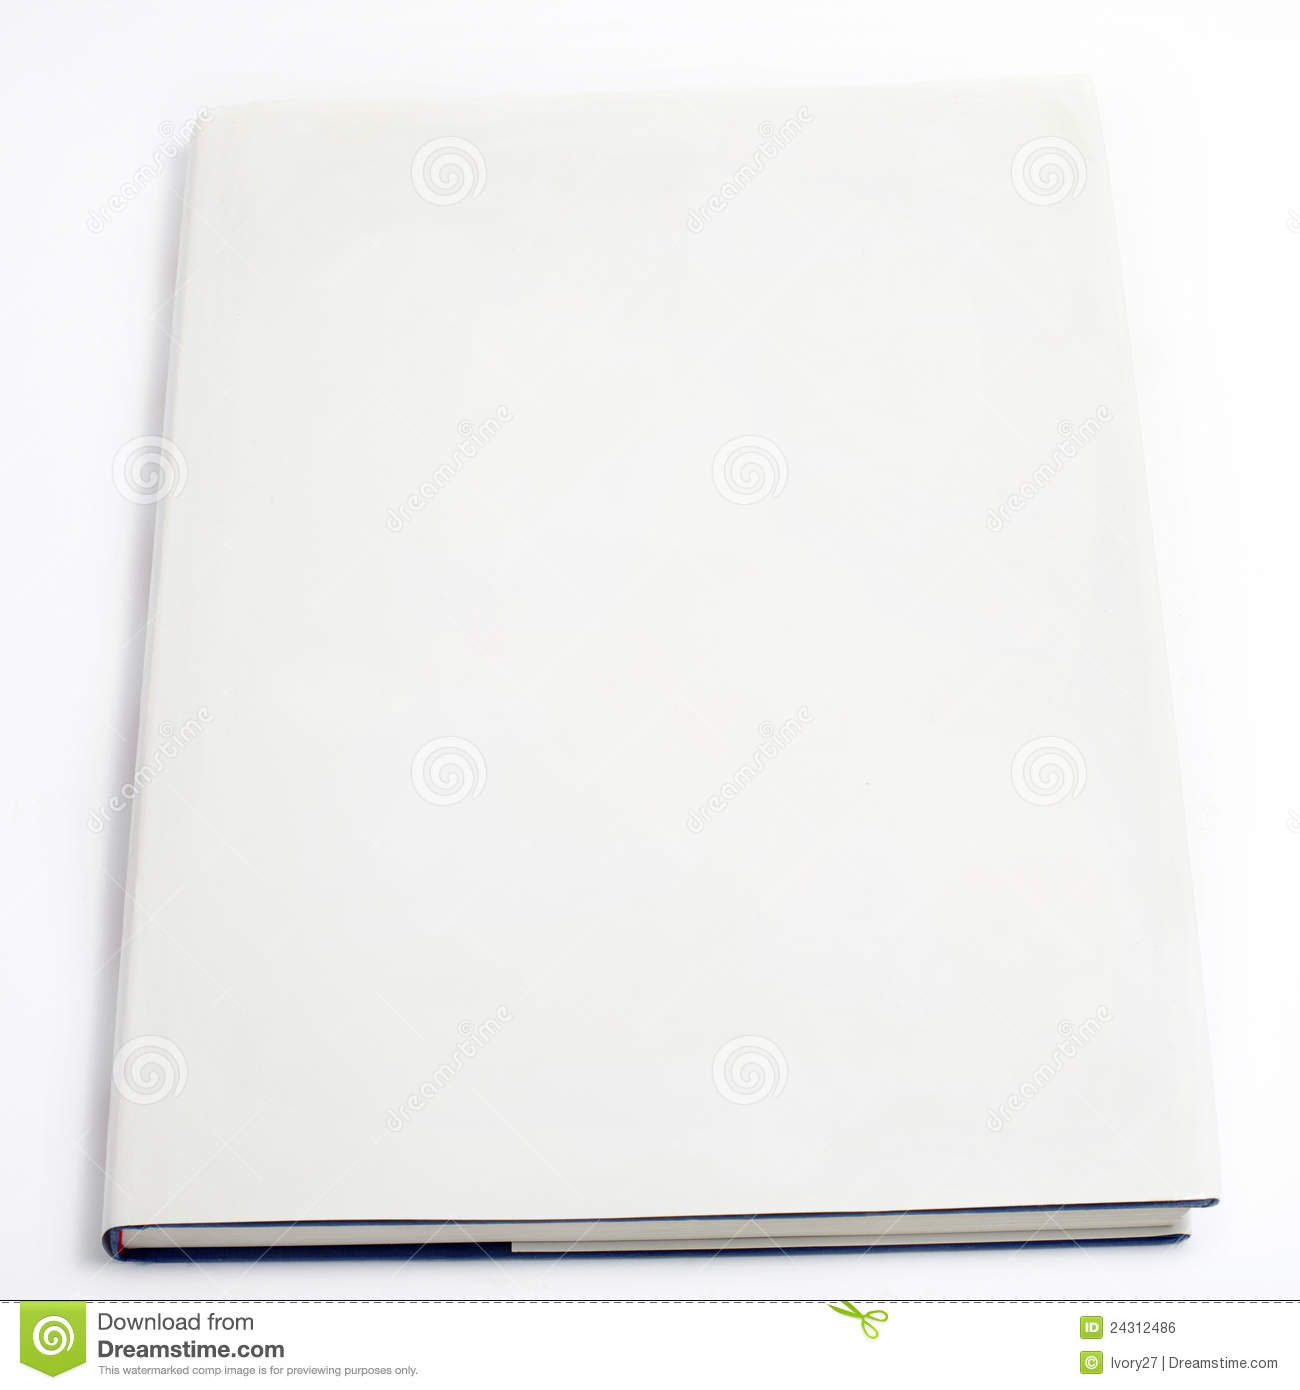 Blank Book Cover White Royalty Free Stock Image - Image: 24312486